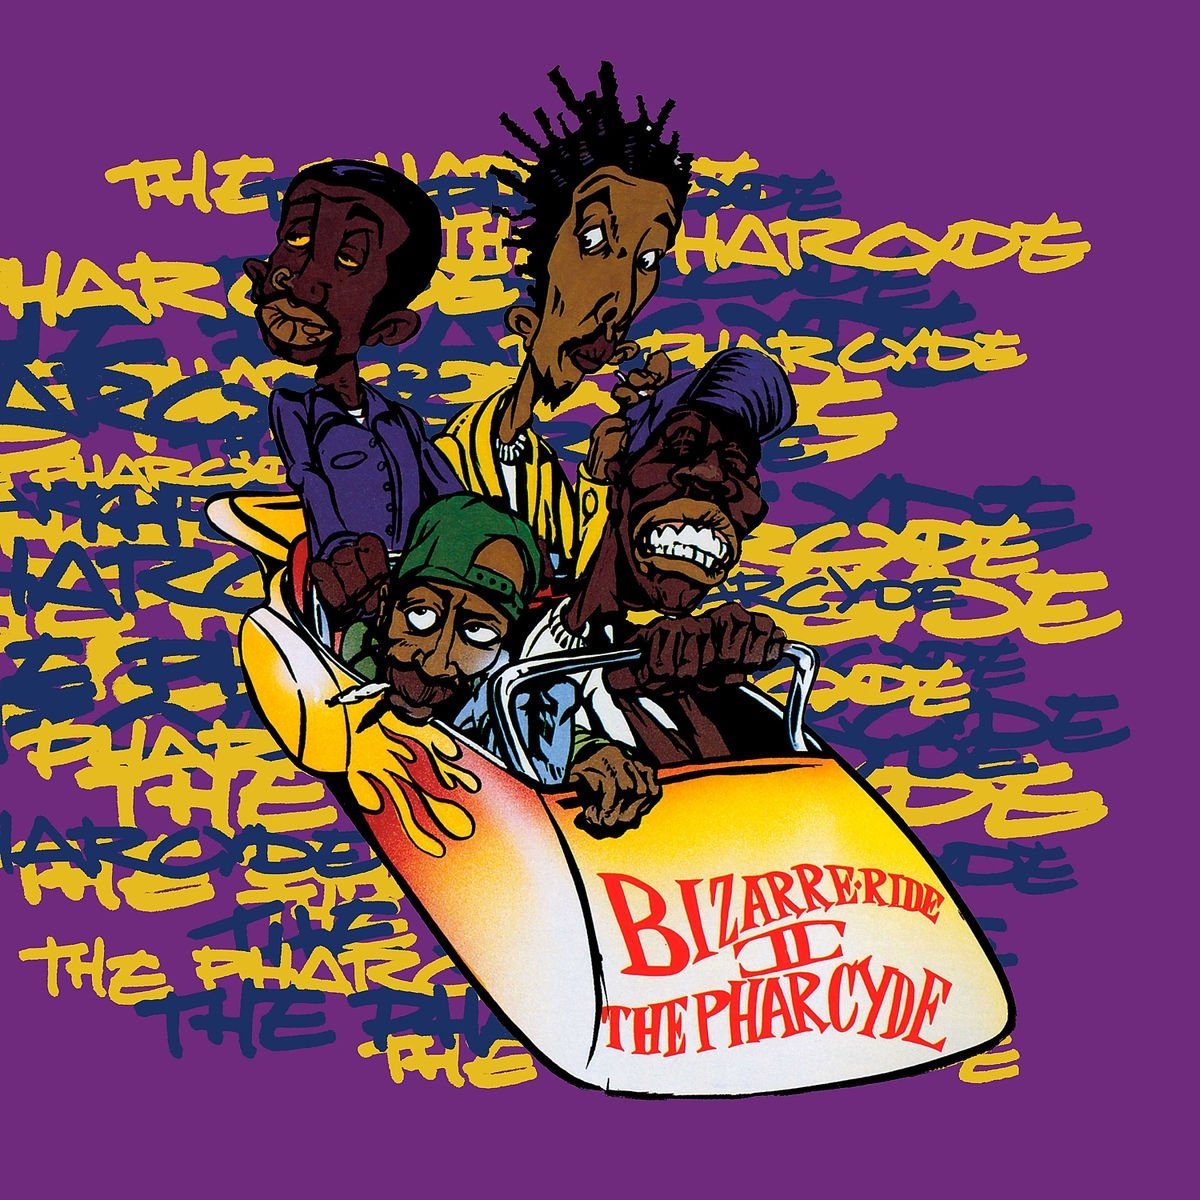 The Pharcyde - Bizarre Ride II The Pharcyde (2012) [FLAC] Download